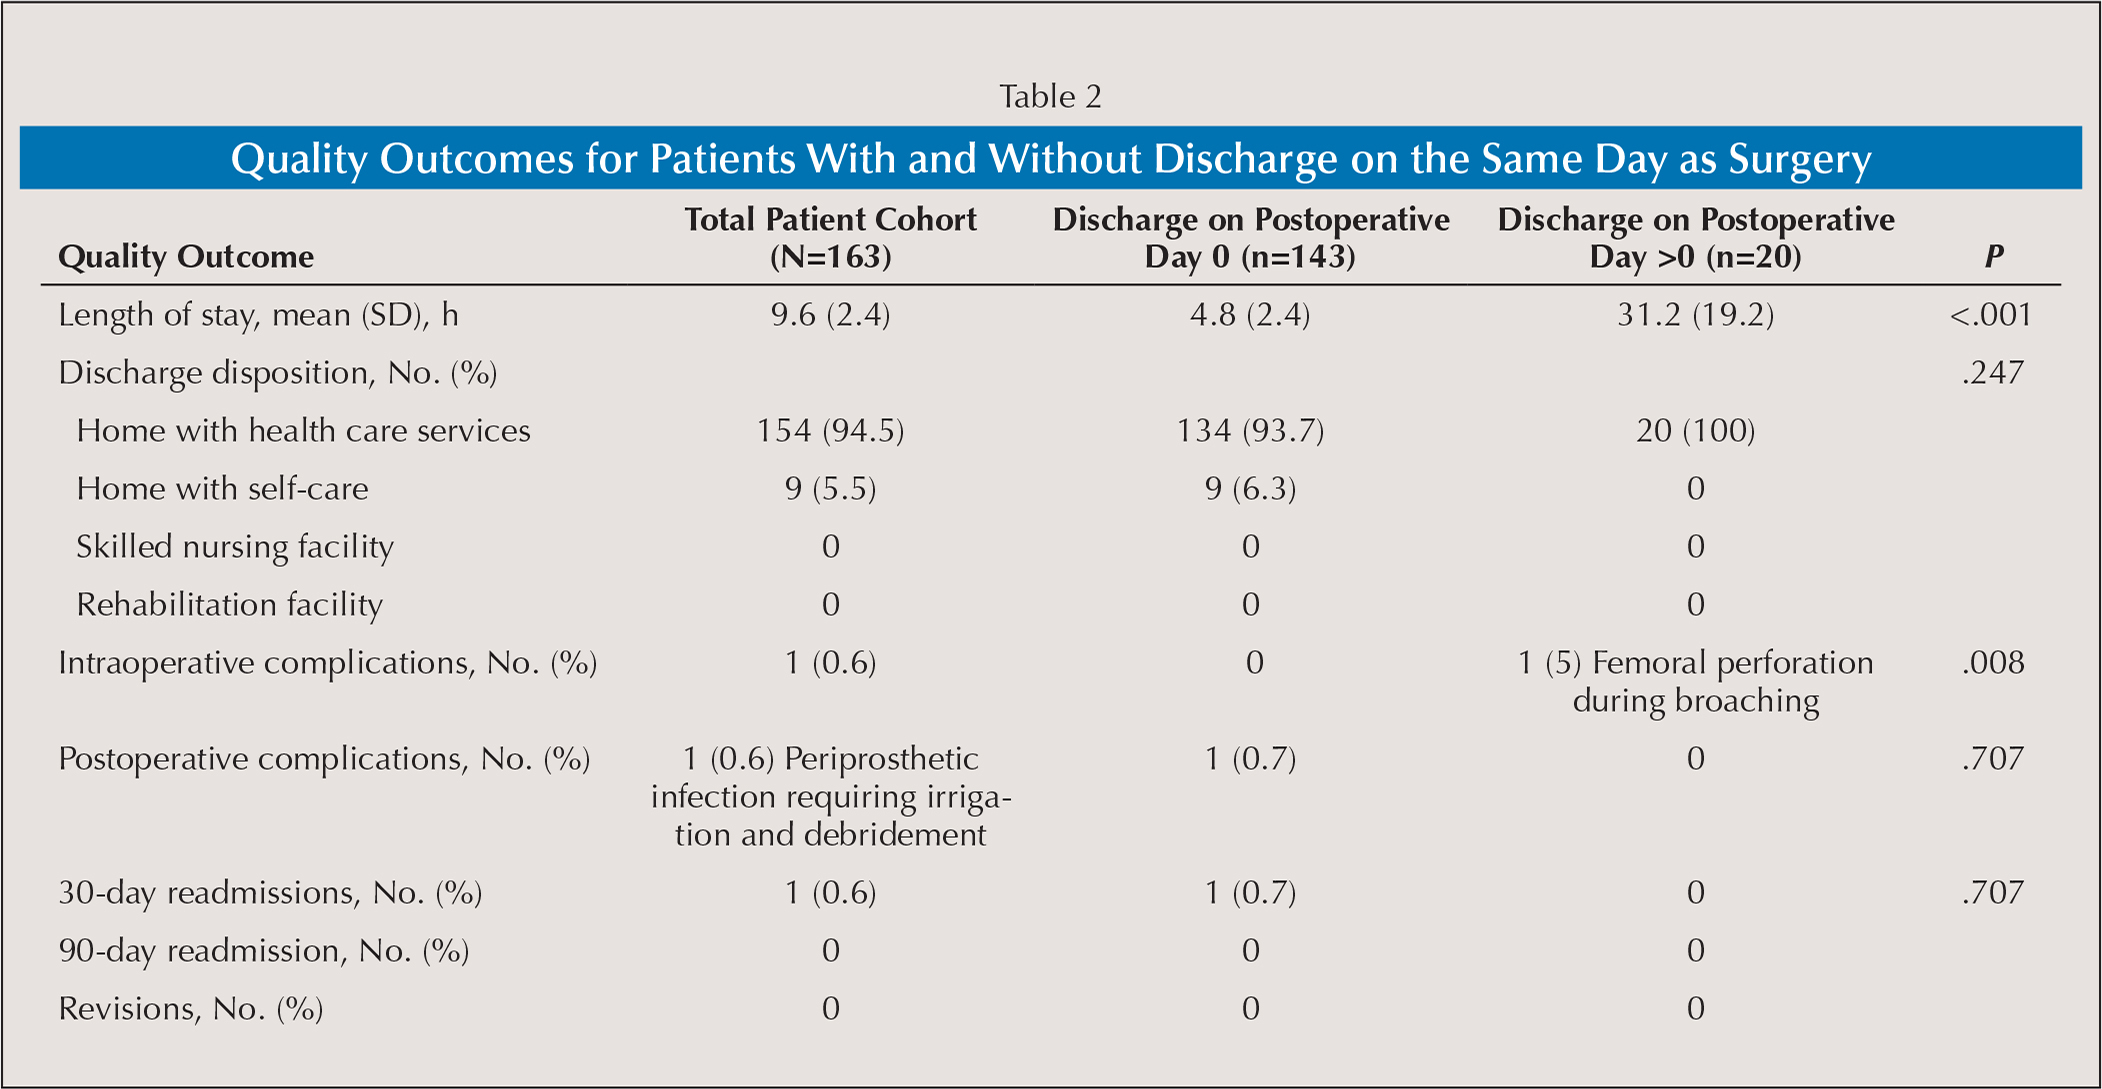 Quality Outcomes for Patients With and Without Discharge on the Same Day as Surgery